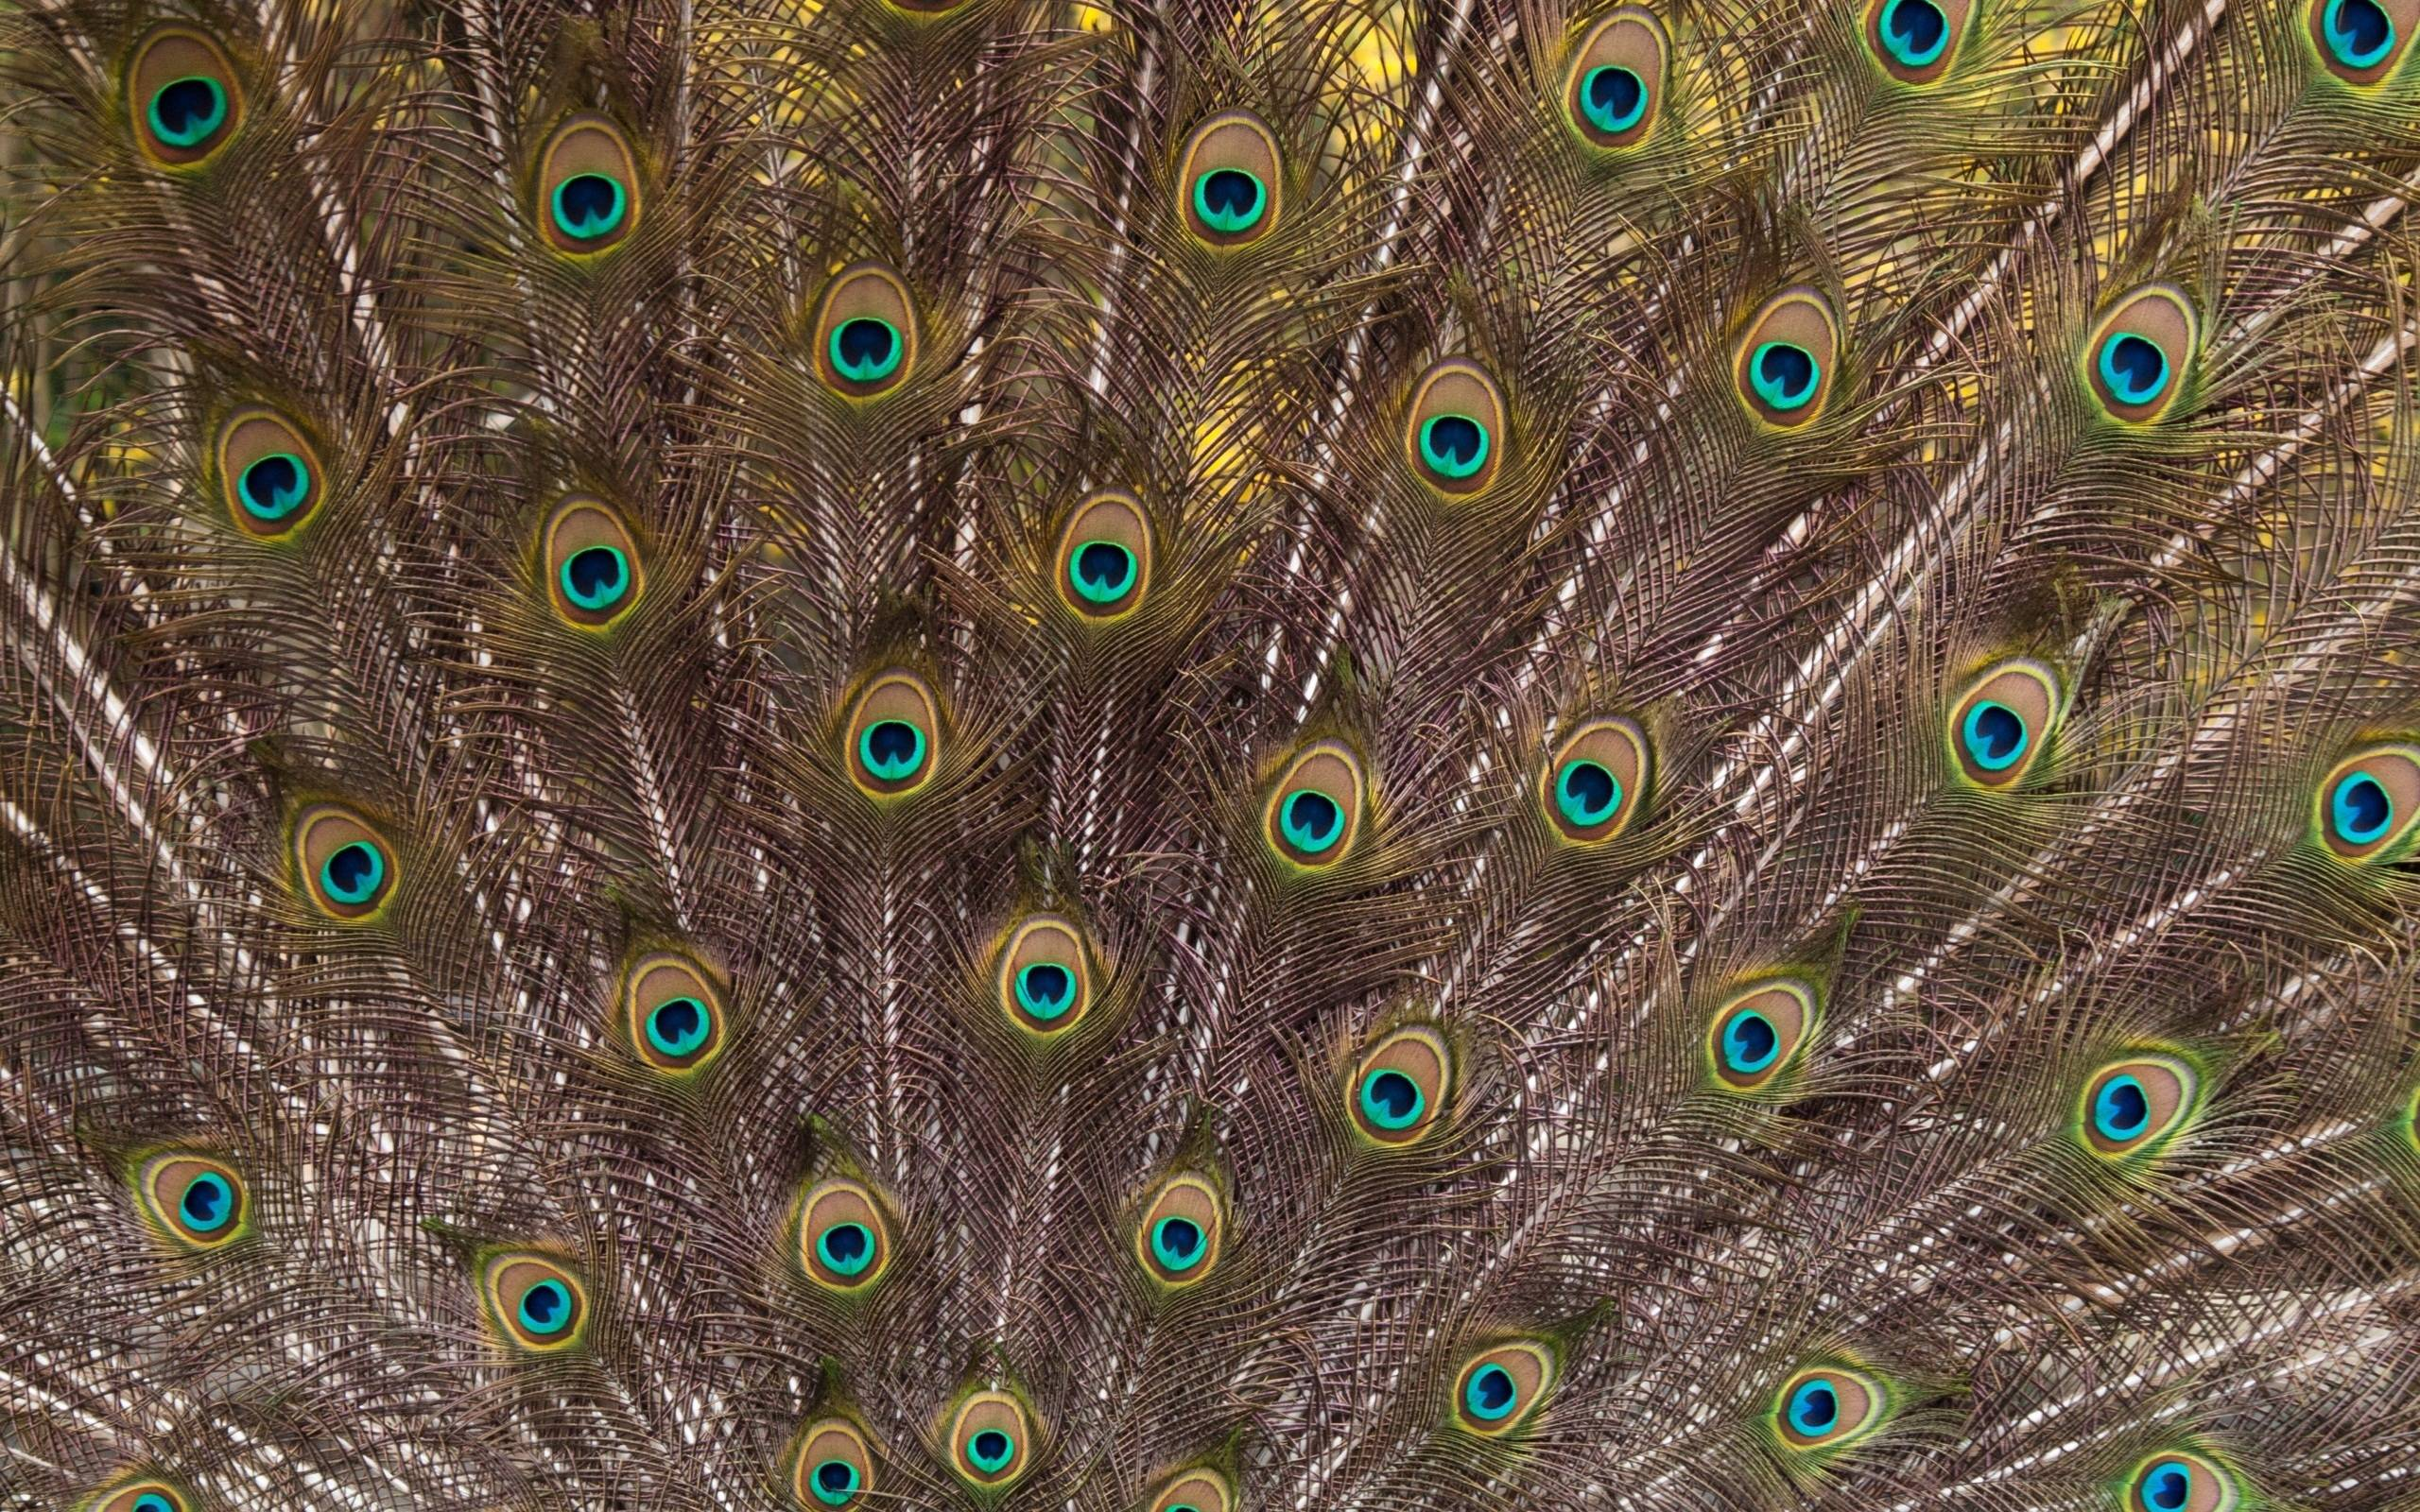 wallpapers of peacock feathers hd 2015 wallpaper cave